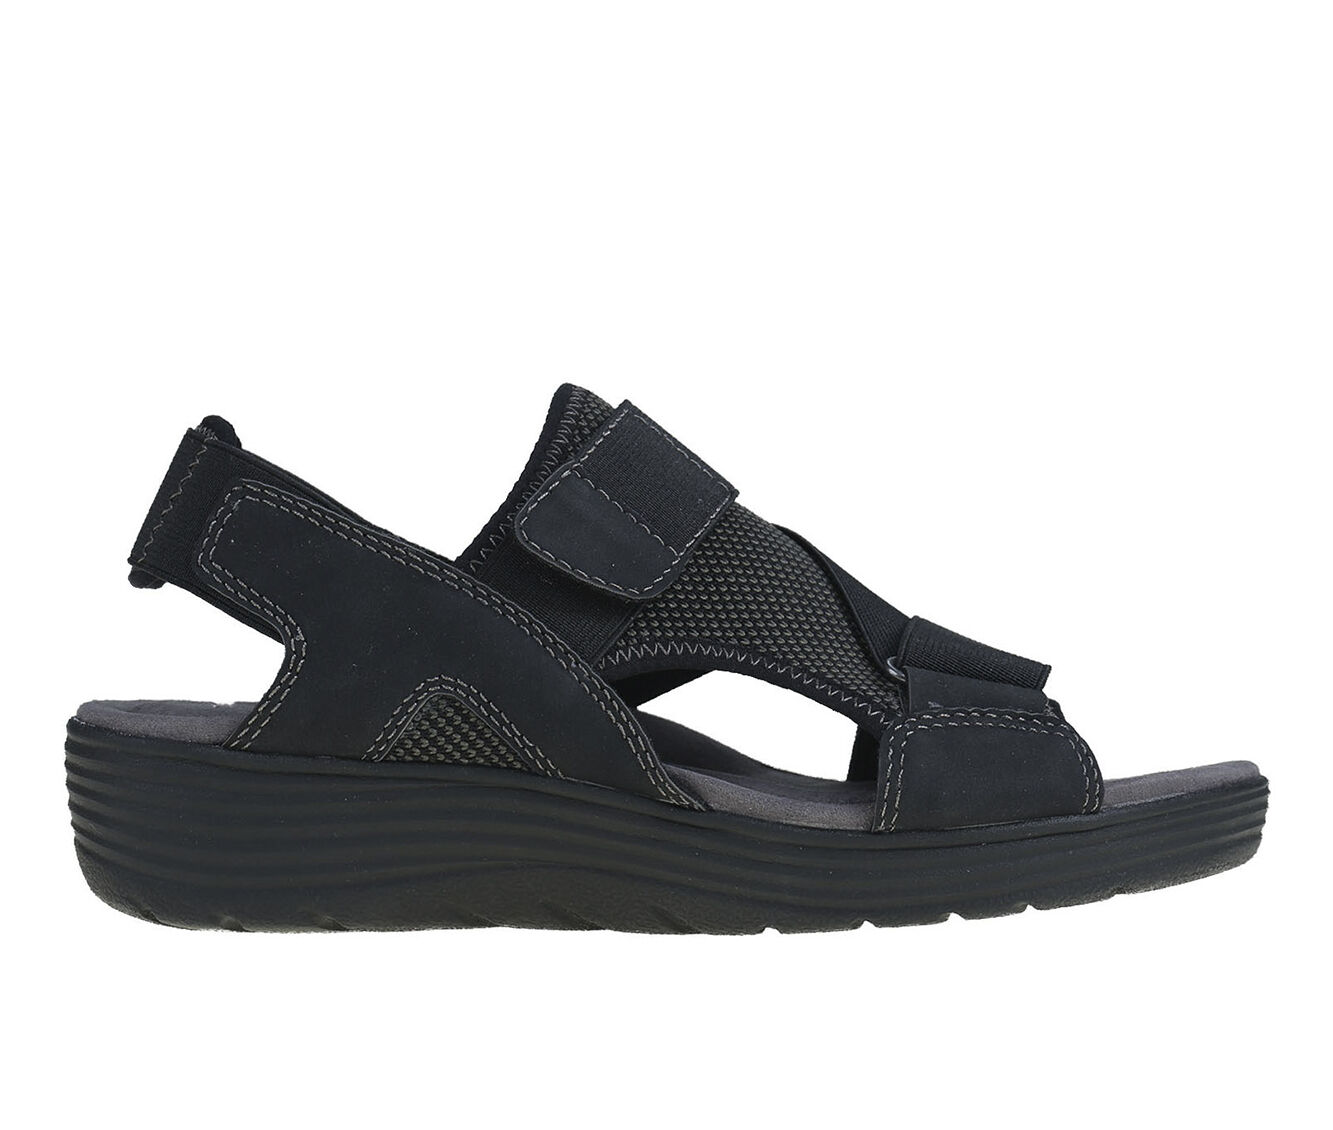 Women's Earth Origins Willow Genevieve Sandals Black